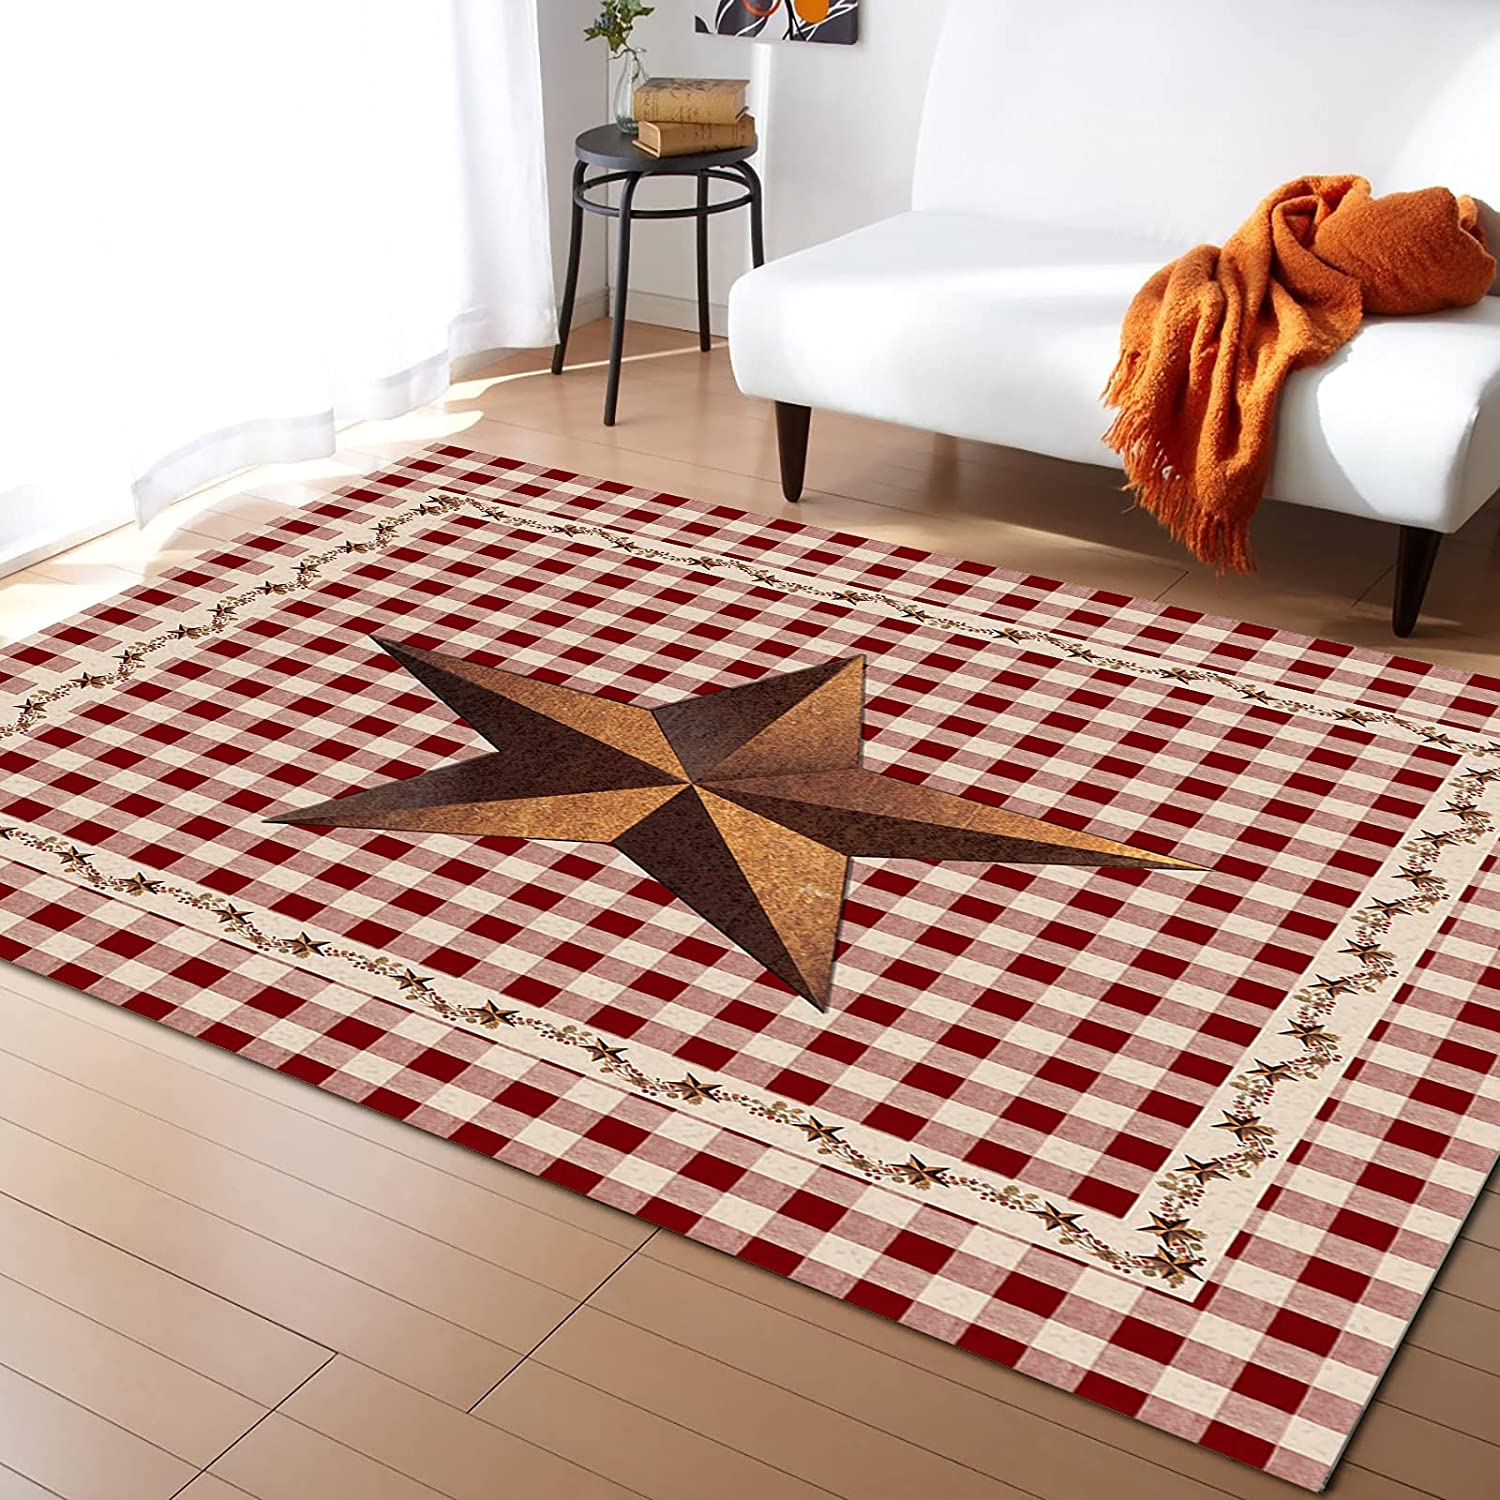 Easy-to-use ARTSHOWING American Country Style Area Rugs Non-Sli Bedroom trust for